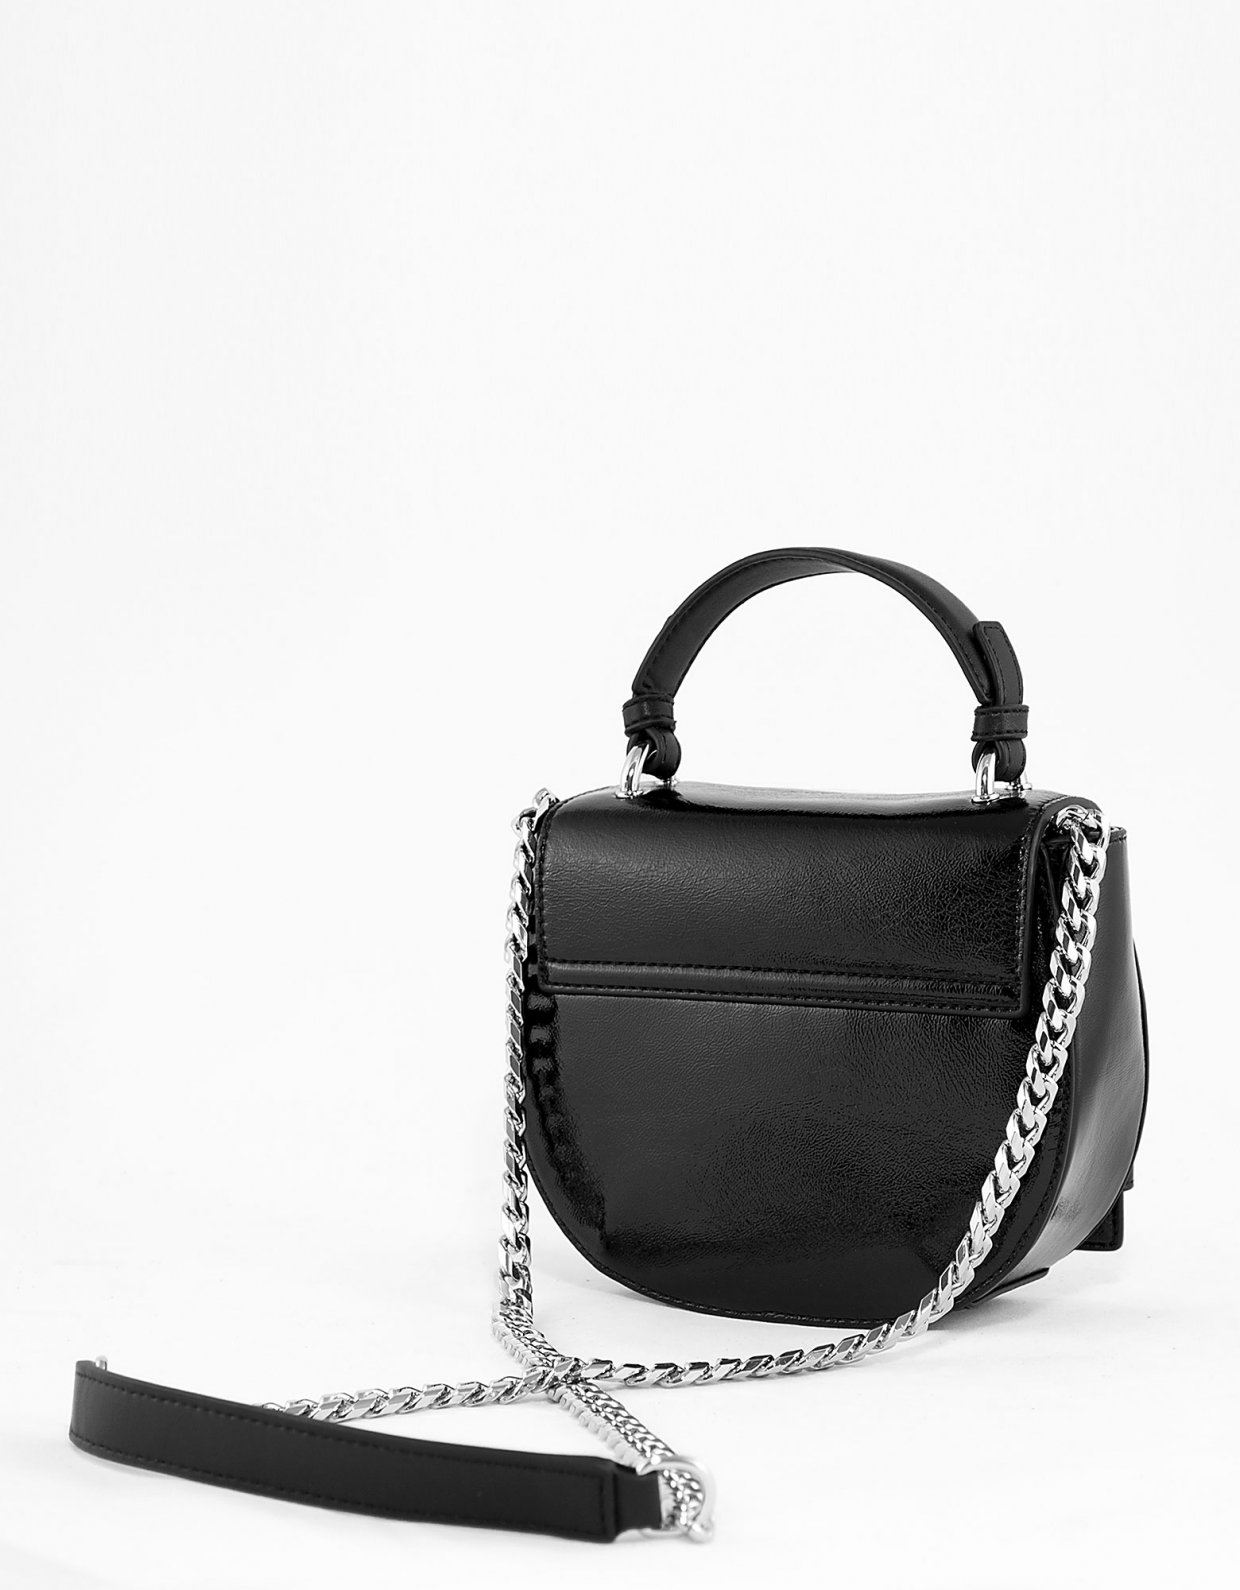 John Richmond Handbag Nasaq